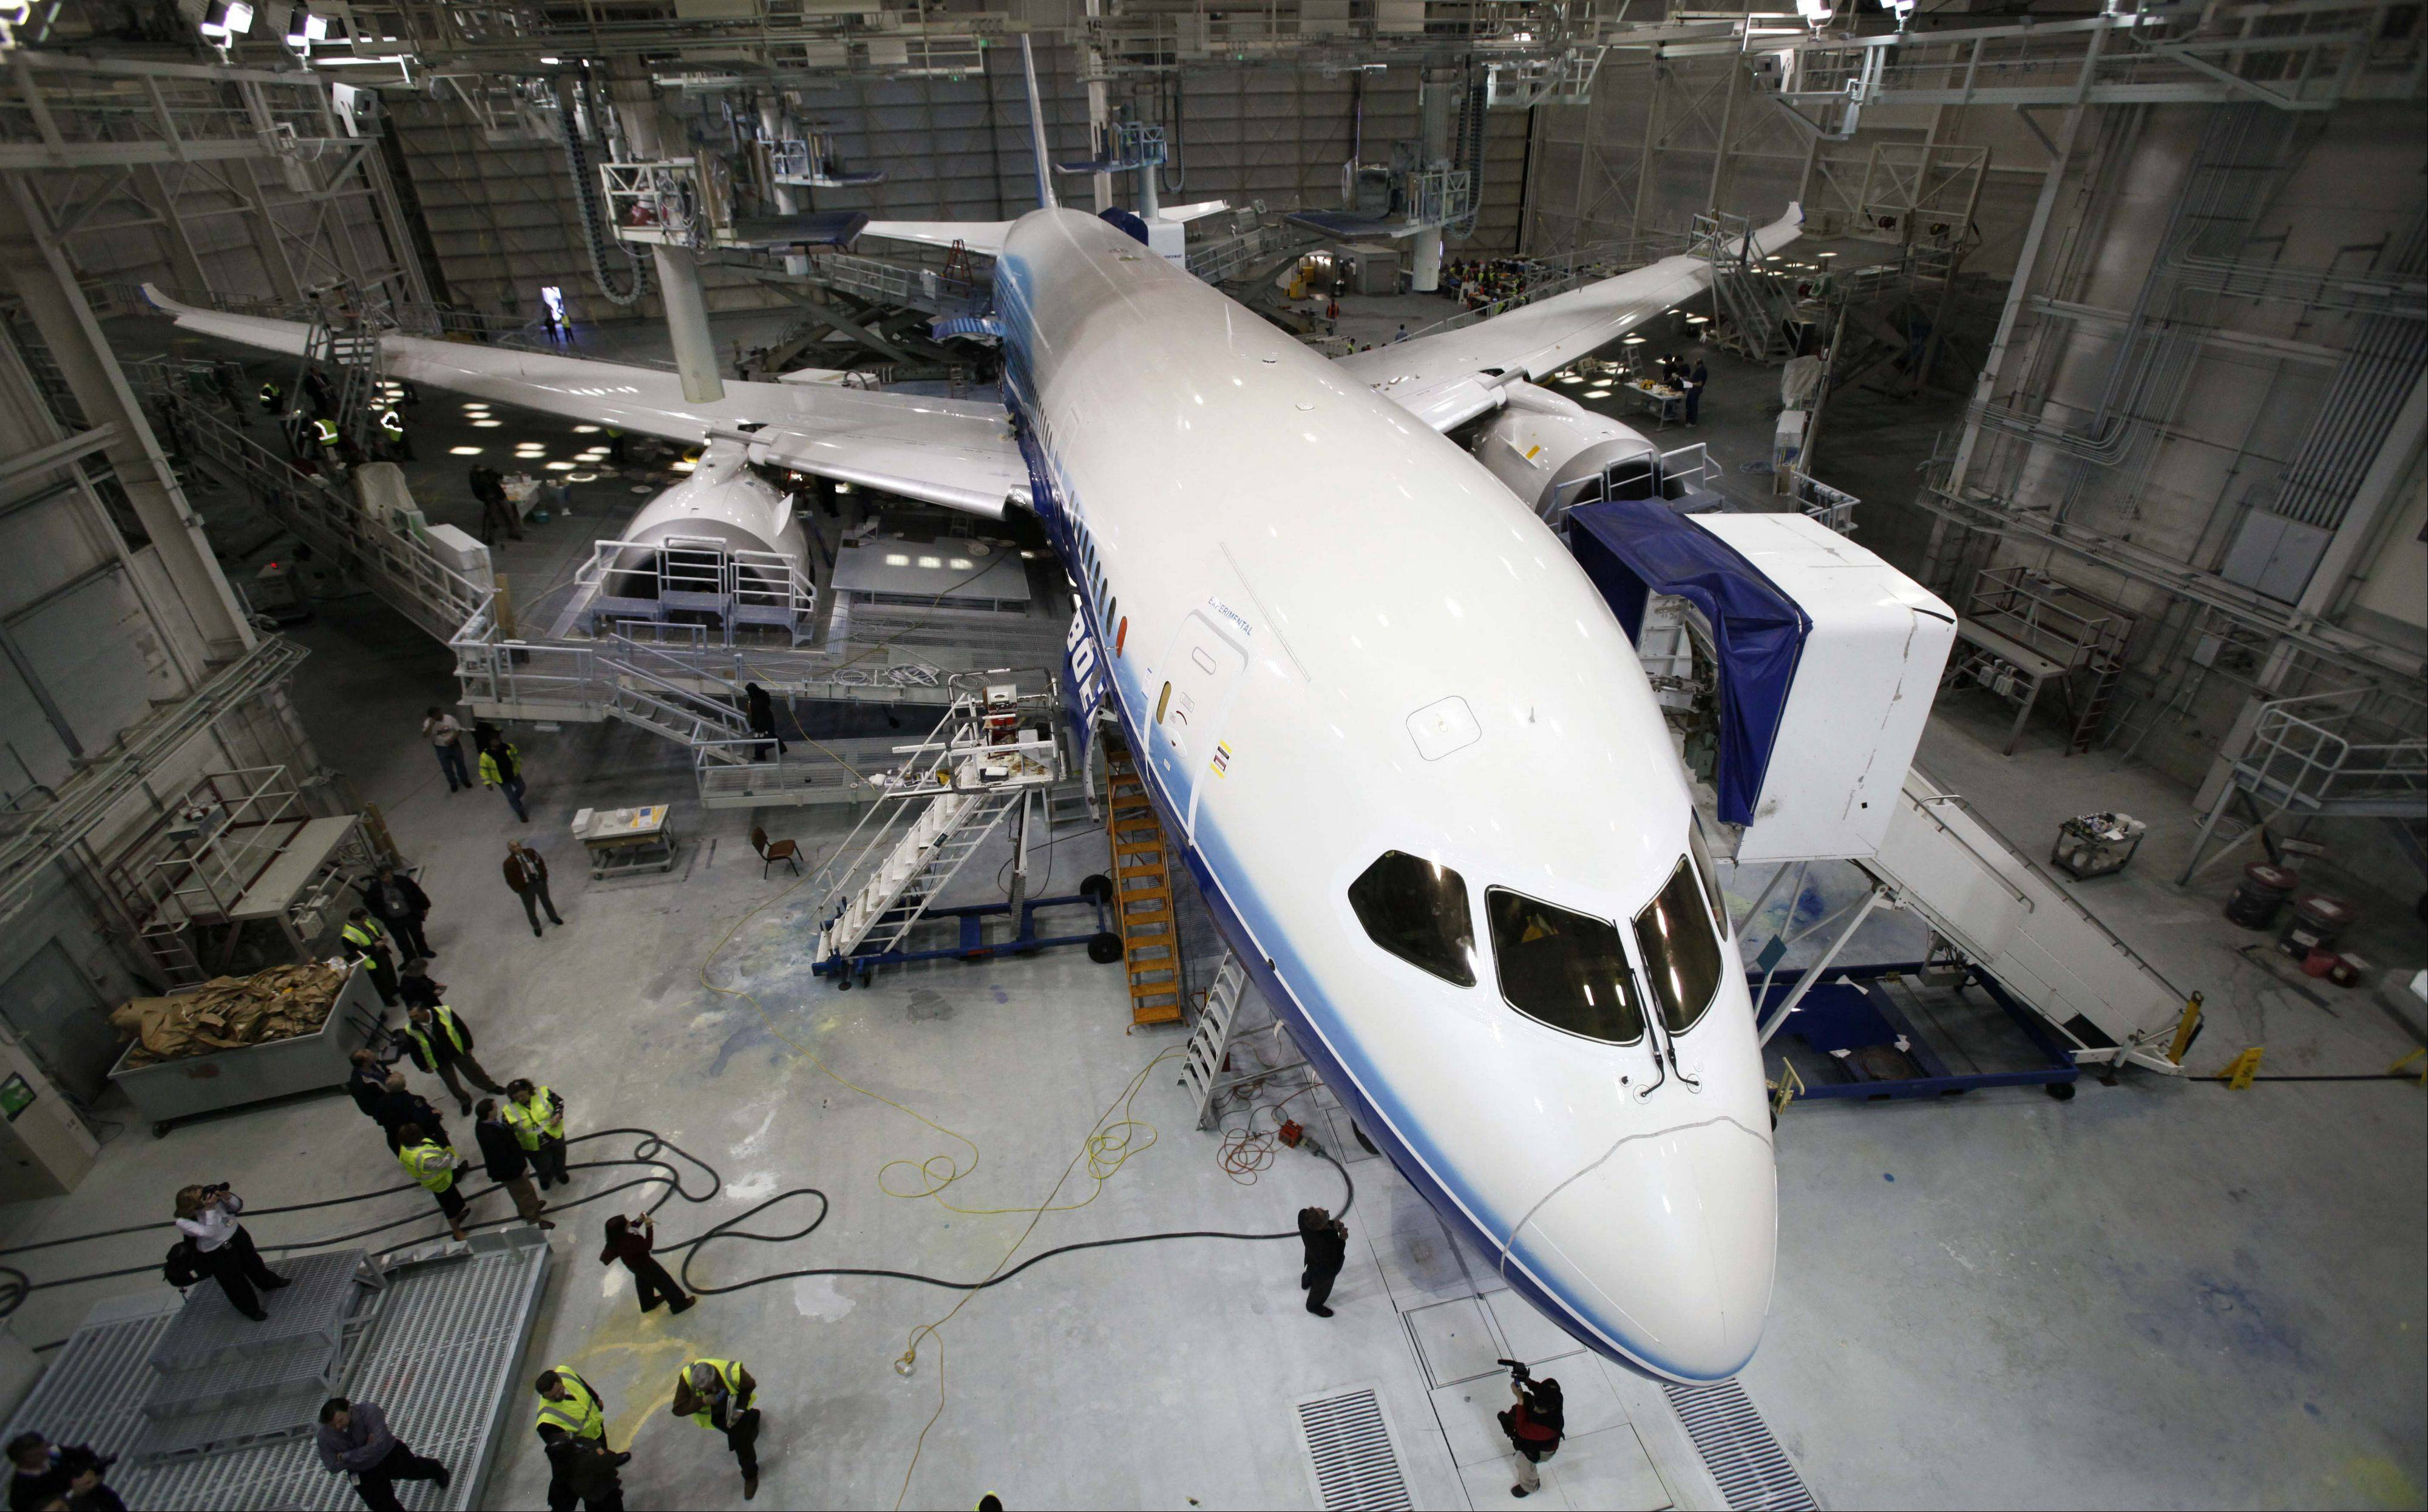 A Boeing 787 sits in a paint hangar at the plant in Everett, Wash. South Carolina's financial oversight board unanimously approved borrowing $120 million for Chicago-based Boeing Co.'s expansion plans in North Charleston.